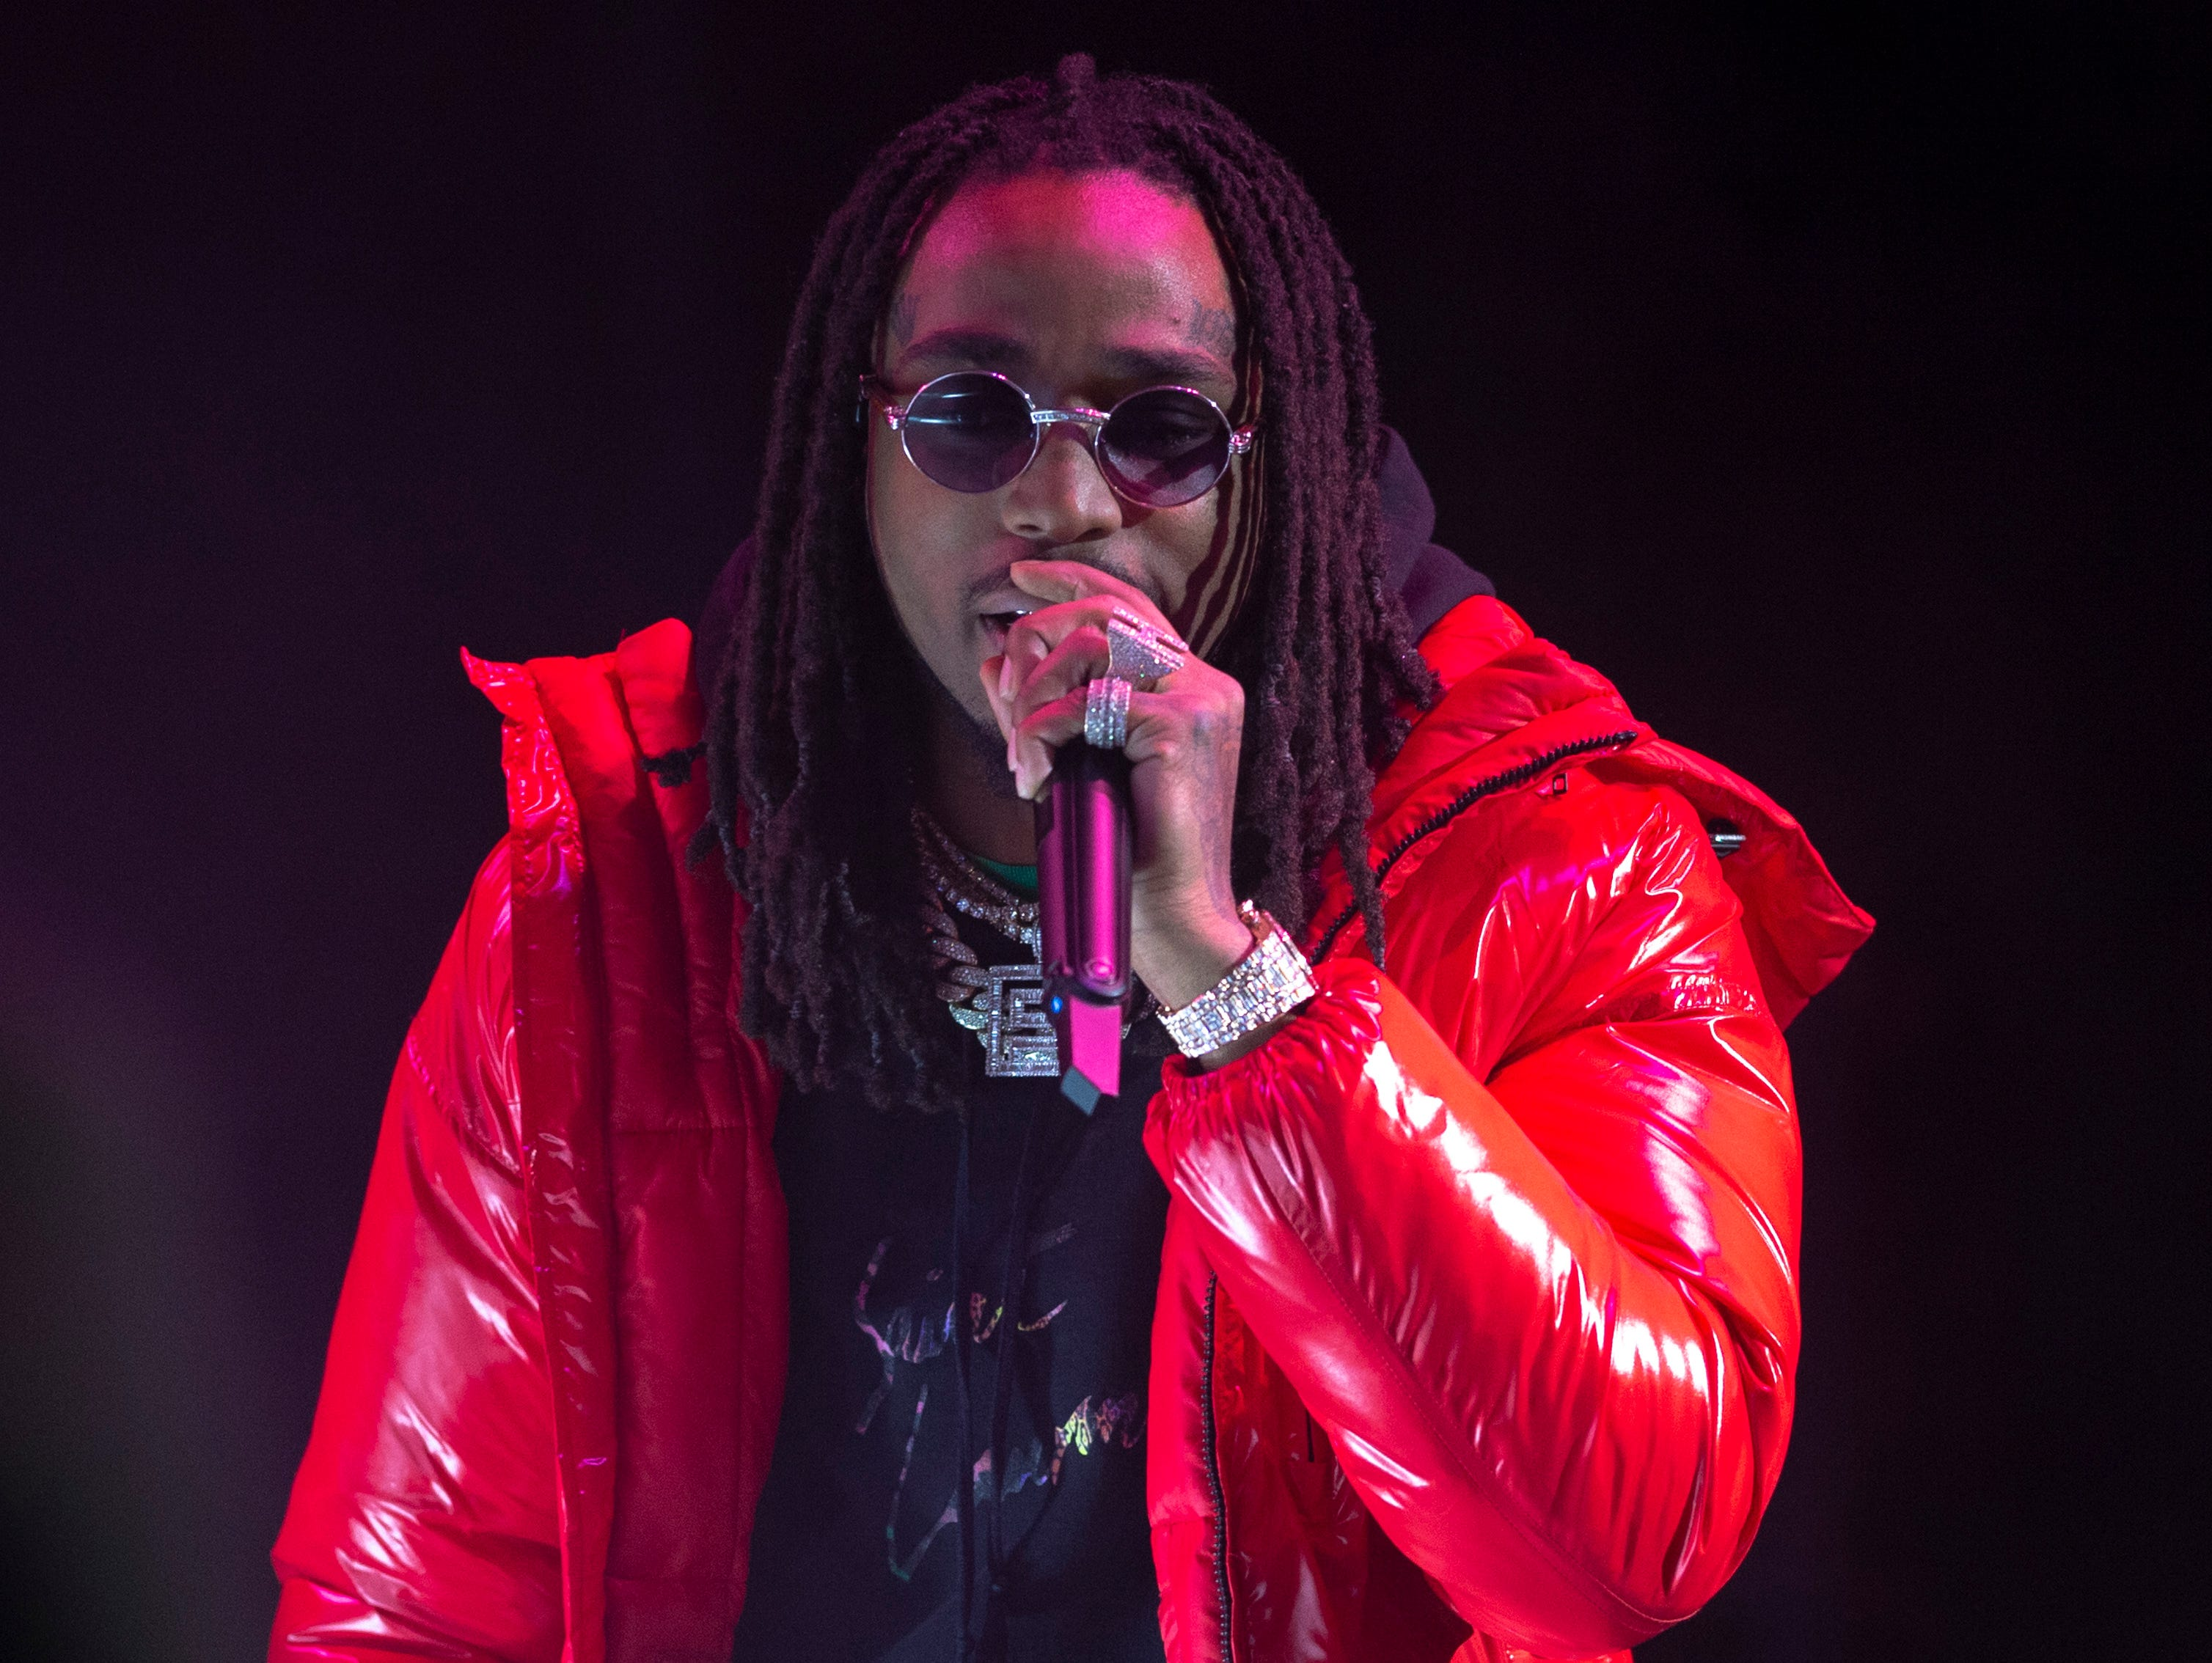 """Migos perform on stage. Radio stations Hot 96.3 and Radio Now 100.9 hosted the annual """"Santa Slam"""" concert, featuring American hip hop trio Migos, in the Indiana Farmers Coliseum at the Indiana State Fairgrounds in Indianapolis, Sunday, Dec. 9, 2018."""